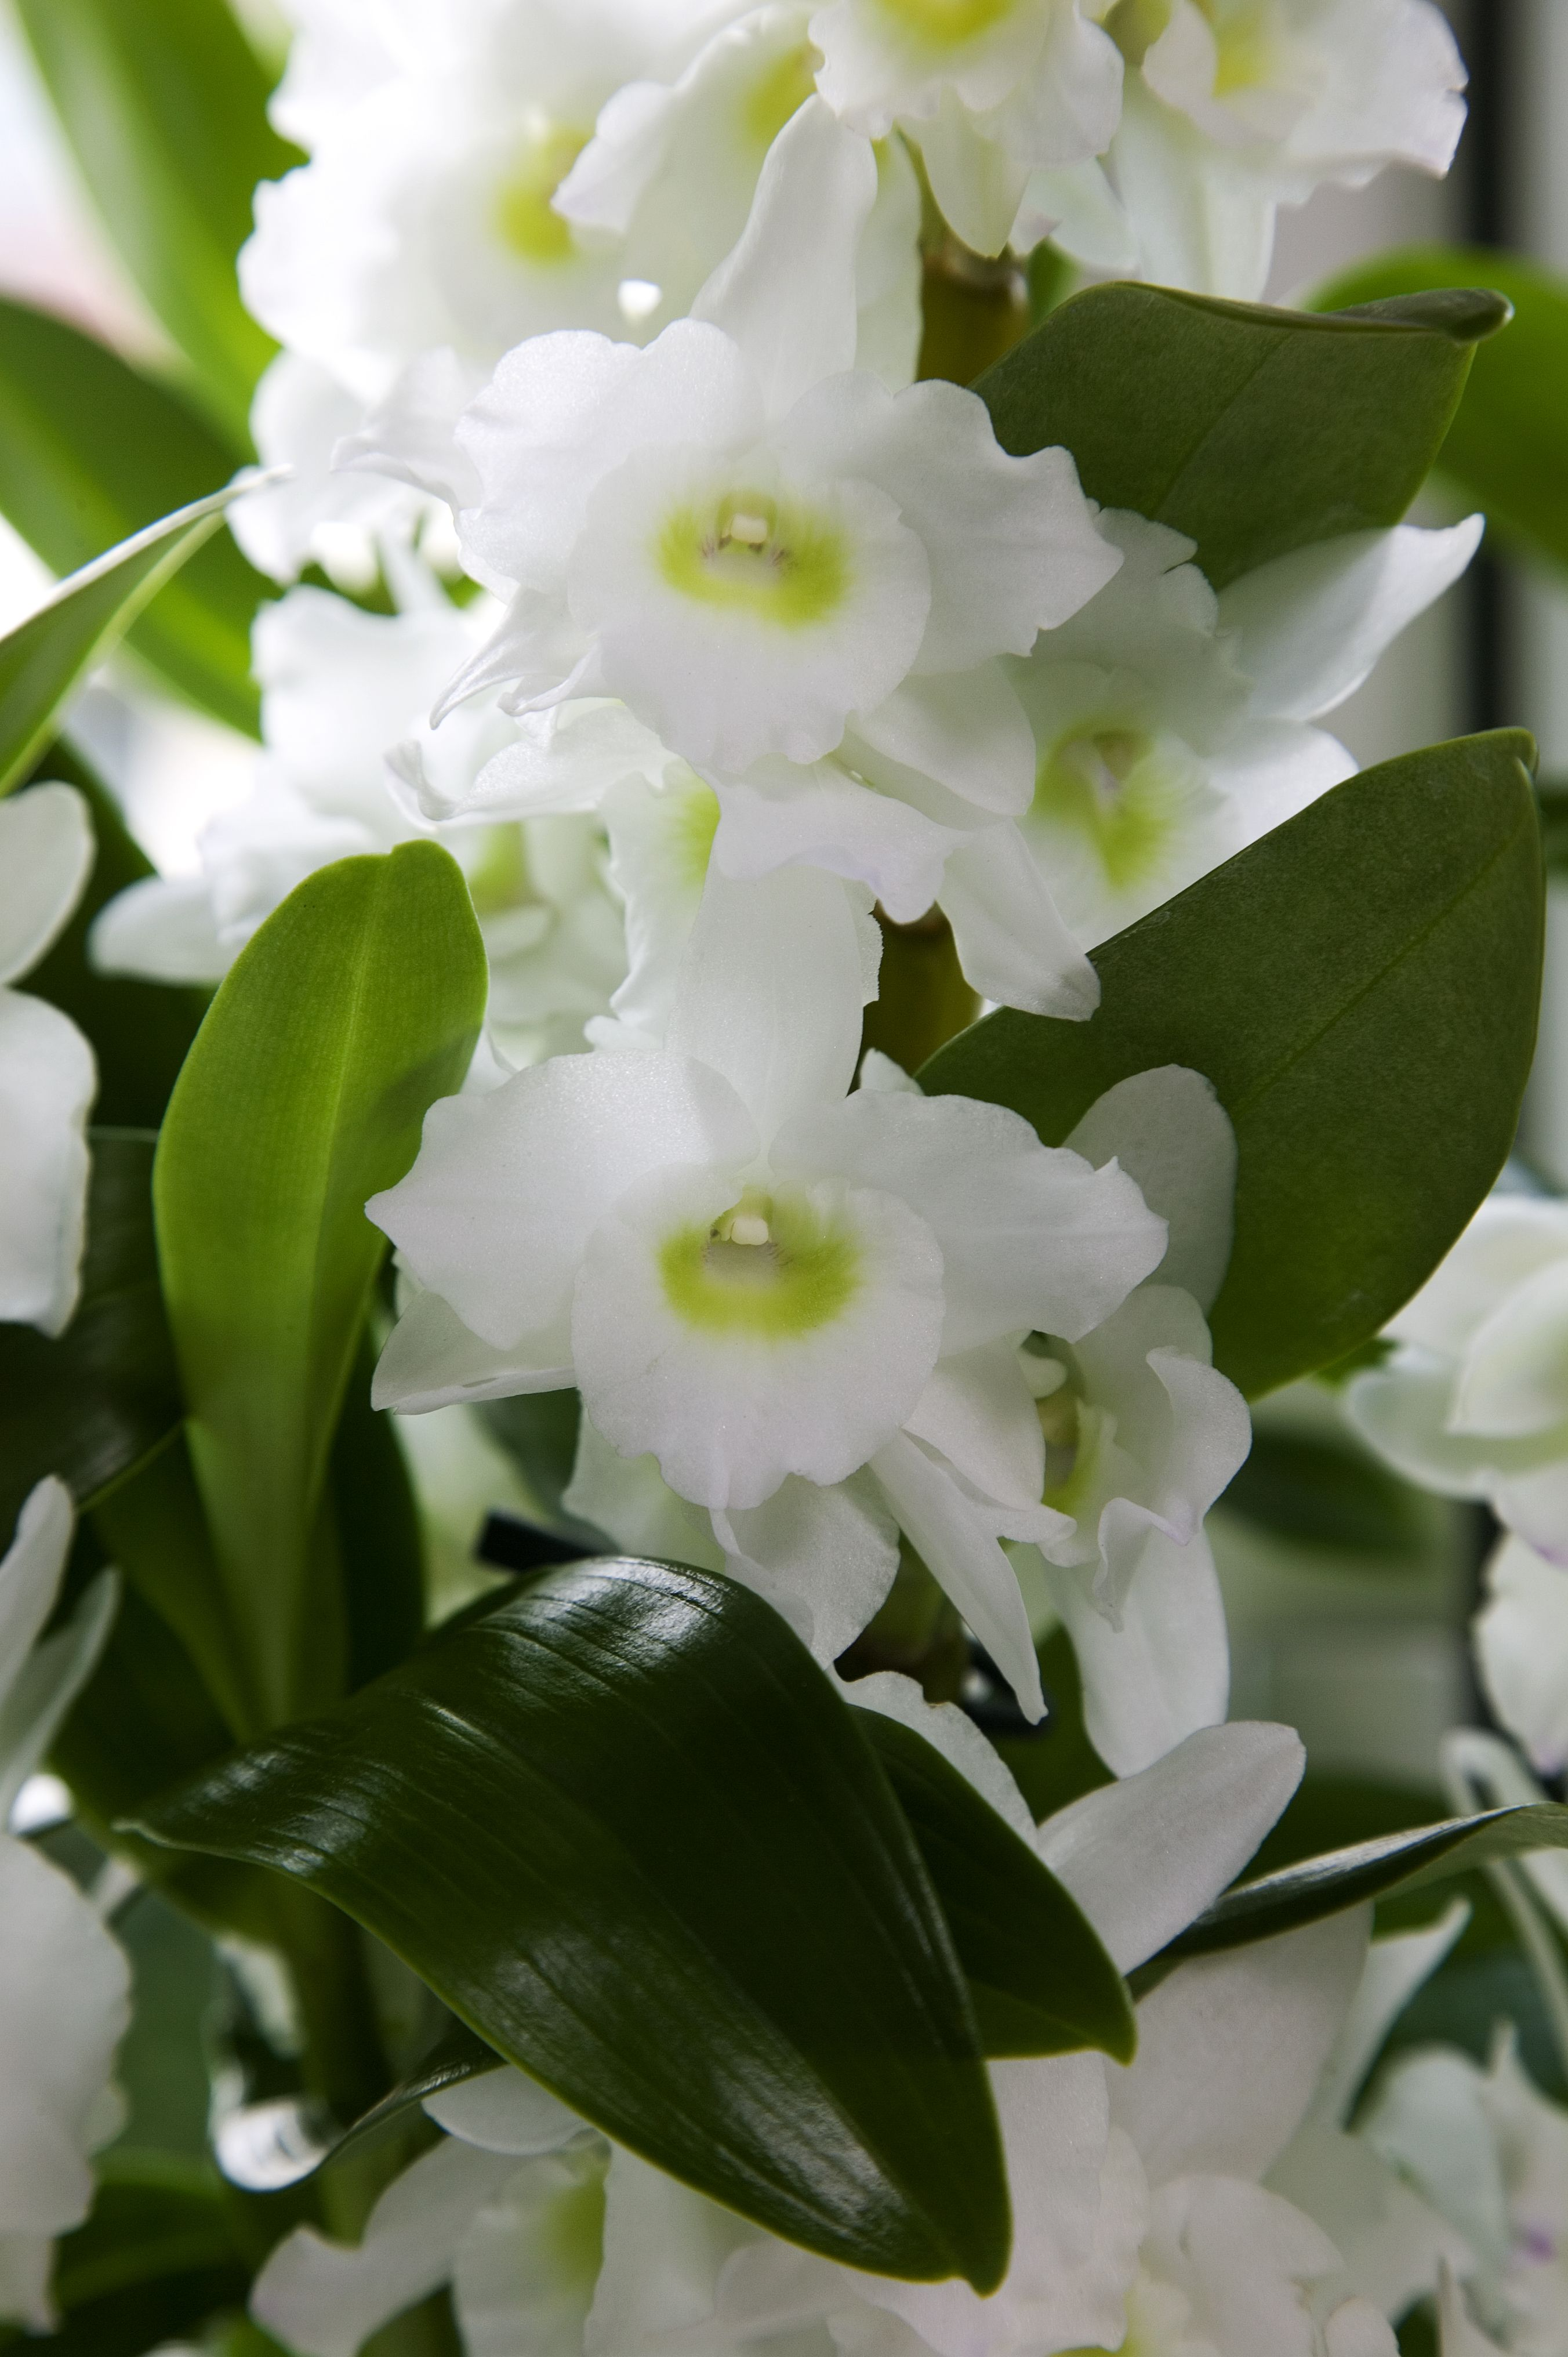 Are you familiar with the dendrobium nobilé also known as the